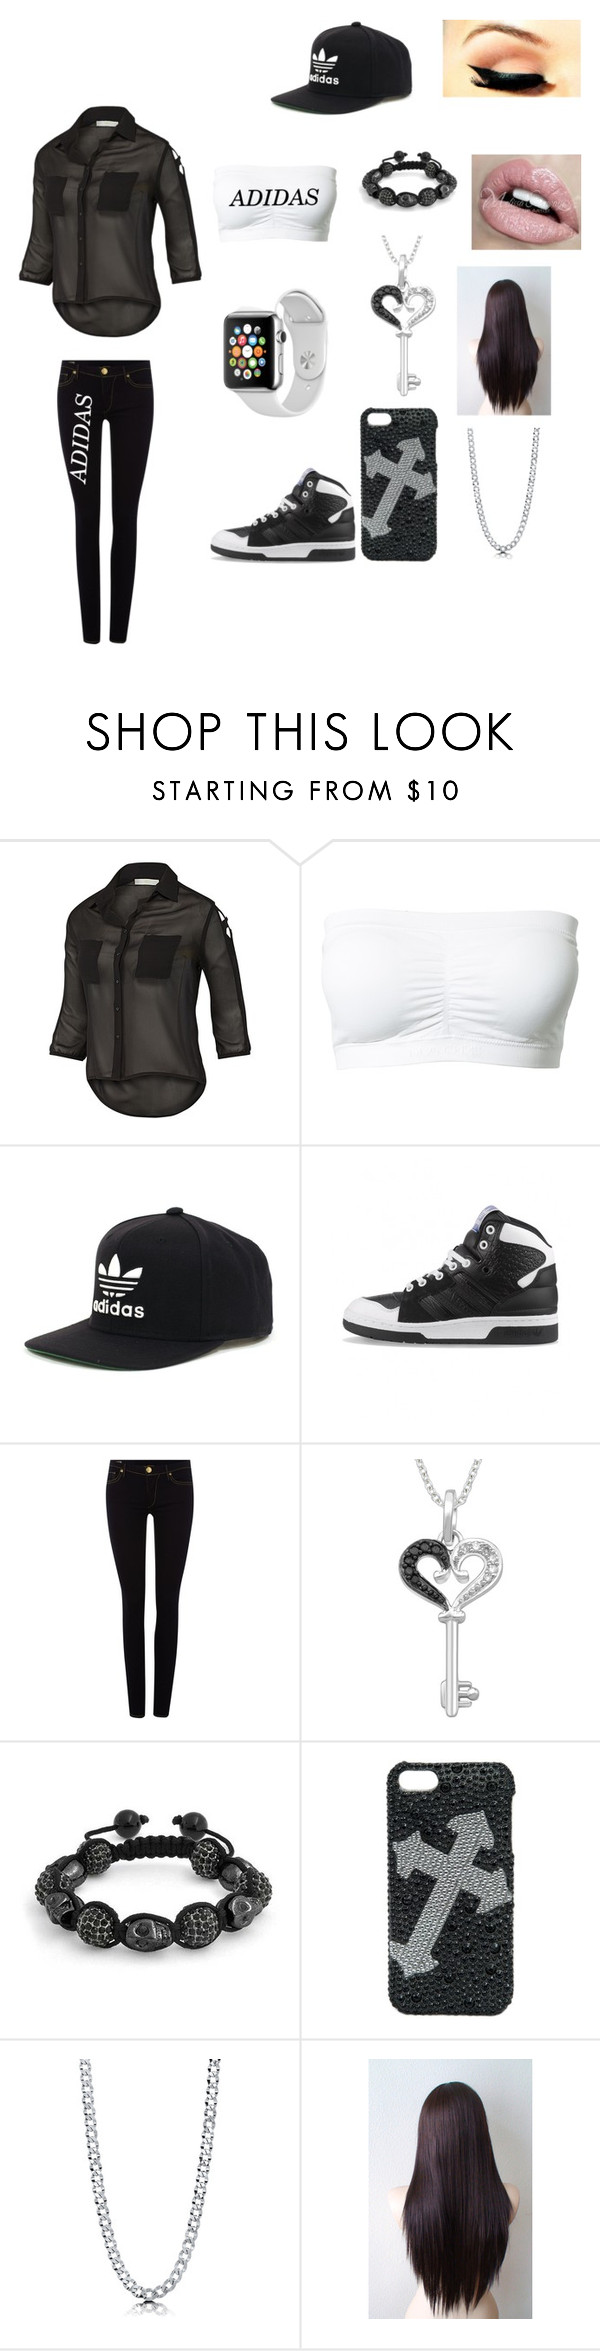 """Adidas"" by theultrafighter ❤ liked on Polyvore featuring adidas, True Religion, Samsung, Bling Jewelry, Blazin Roxx and BERRICLE"